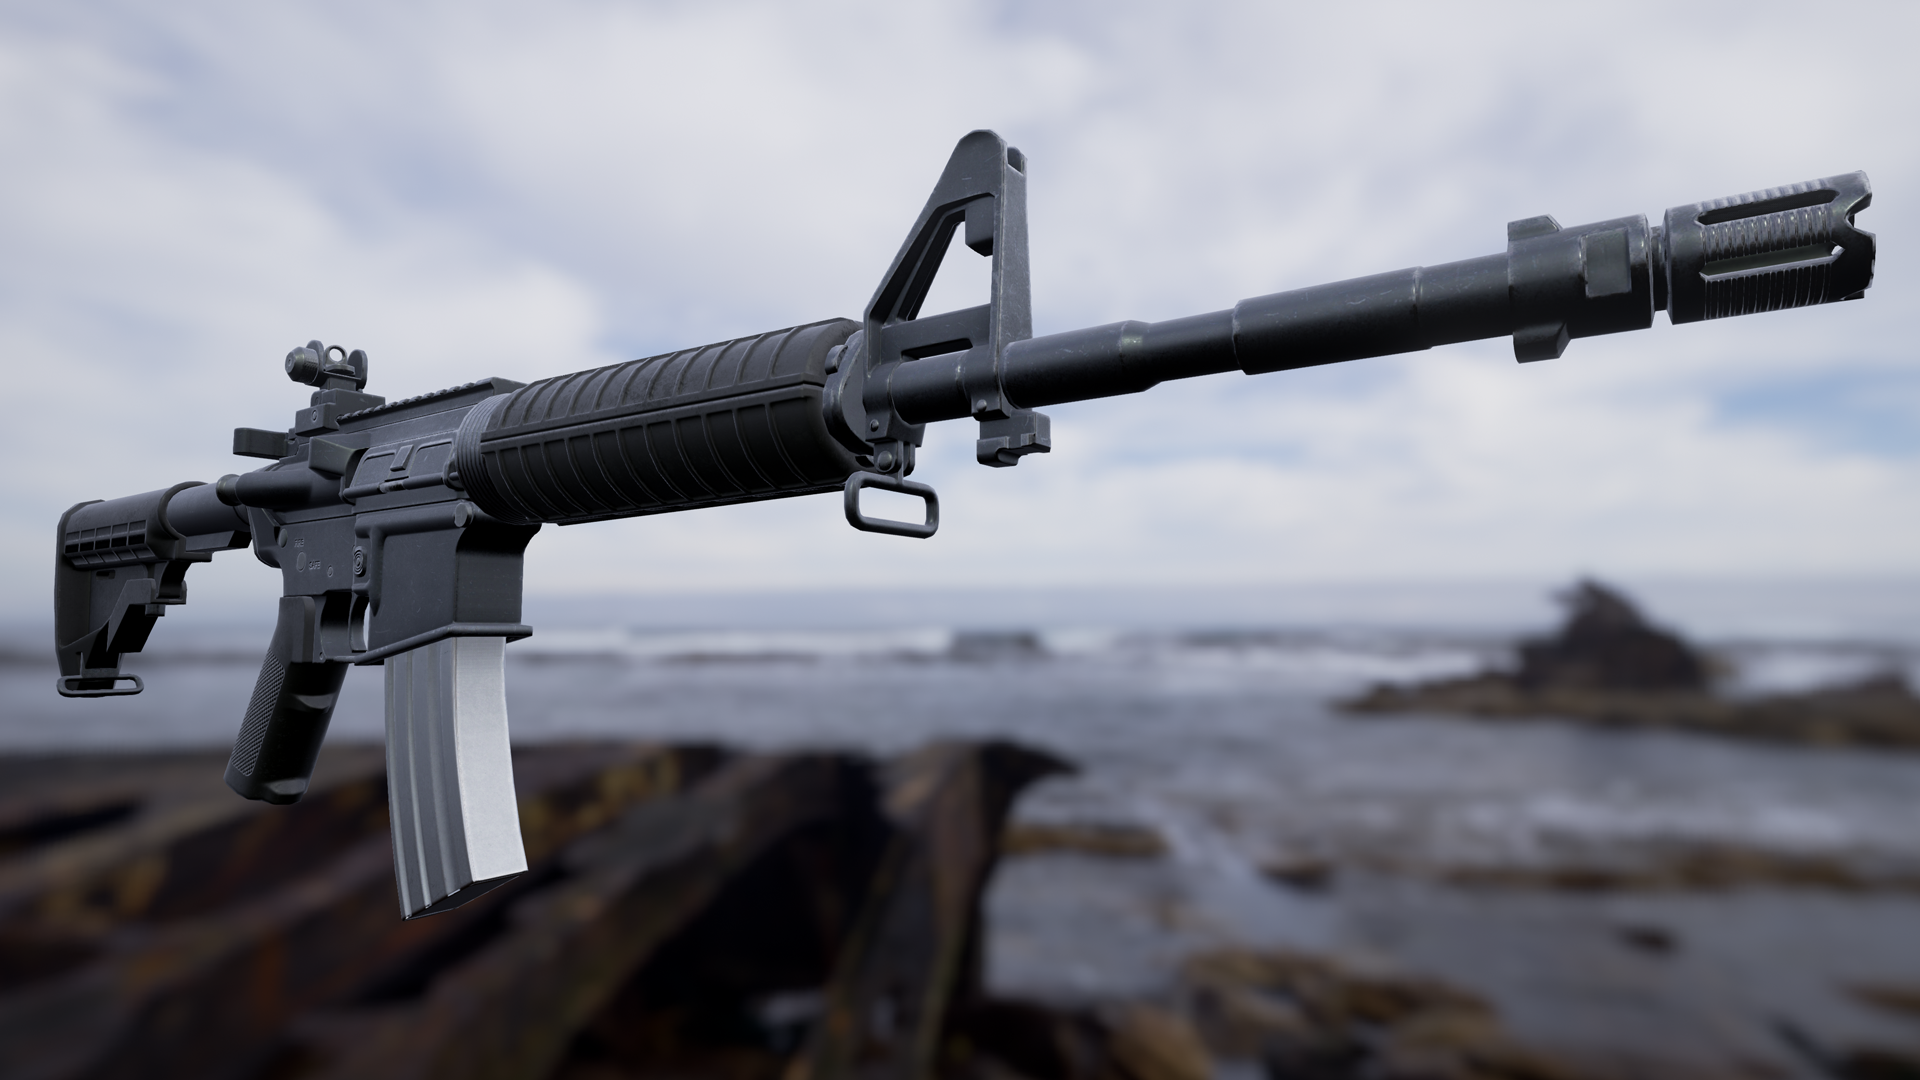 FPS Weapon Bundle by Deadghost Interactive in Weapons - UE4